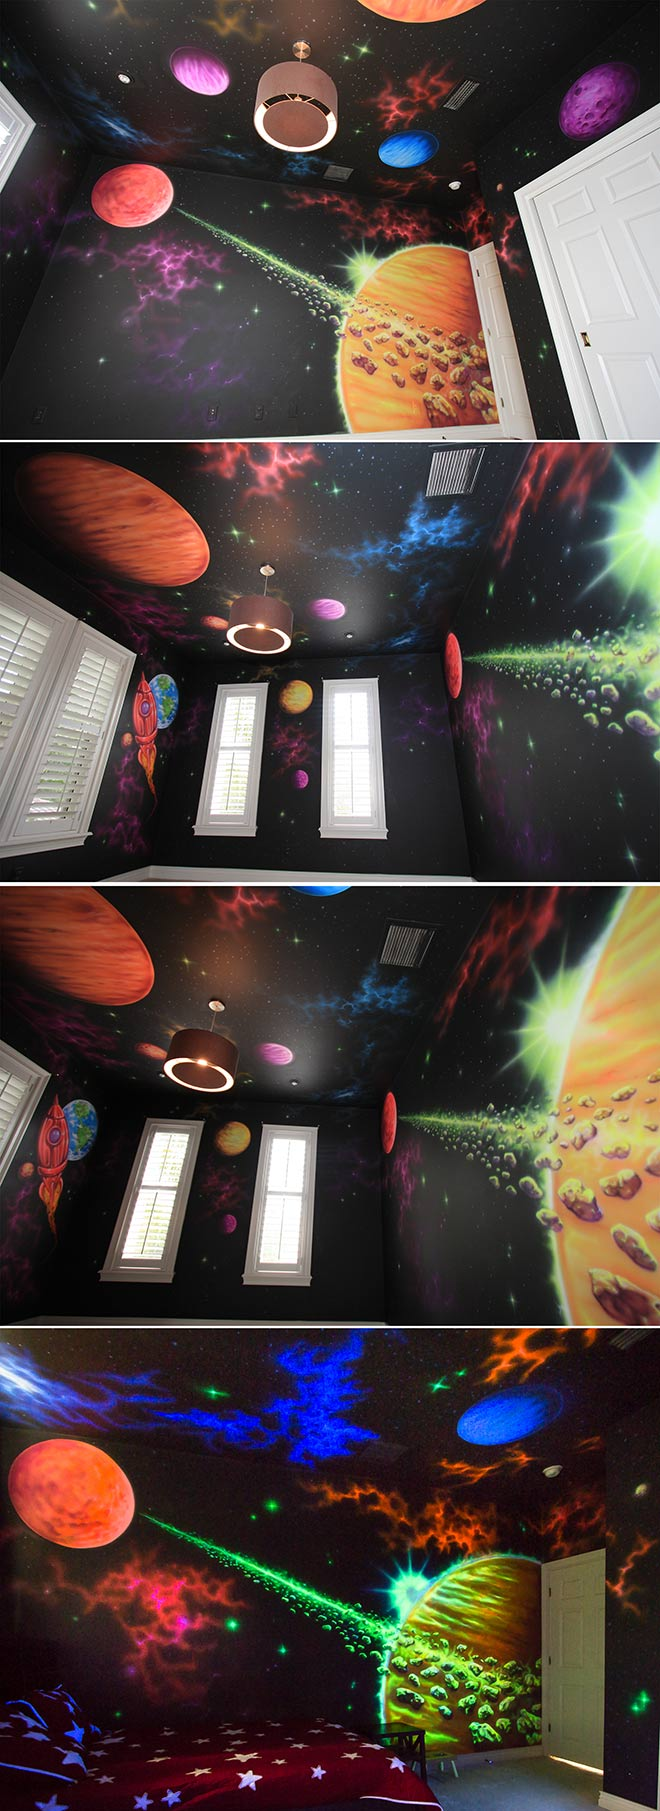 Space Mural - Réalisation Jason Hulfish